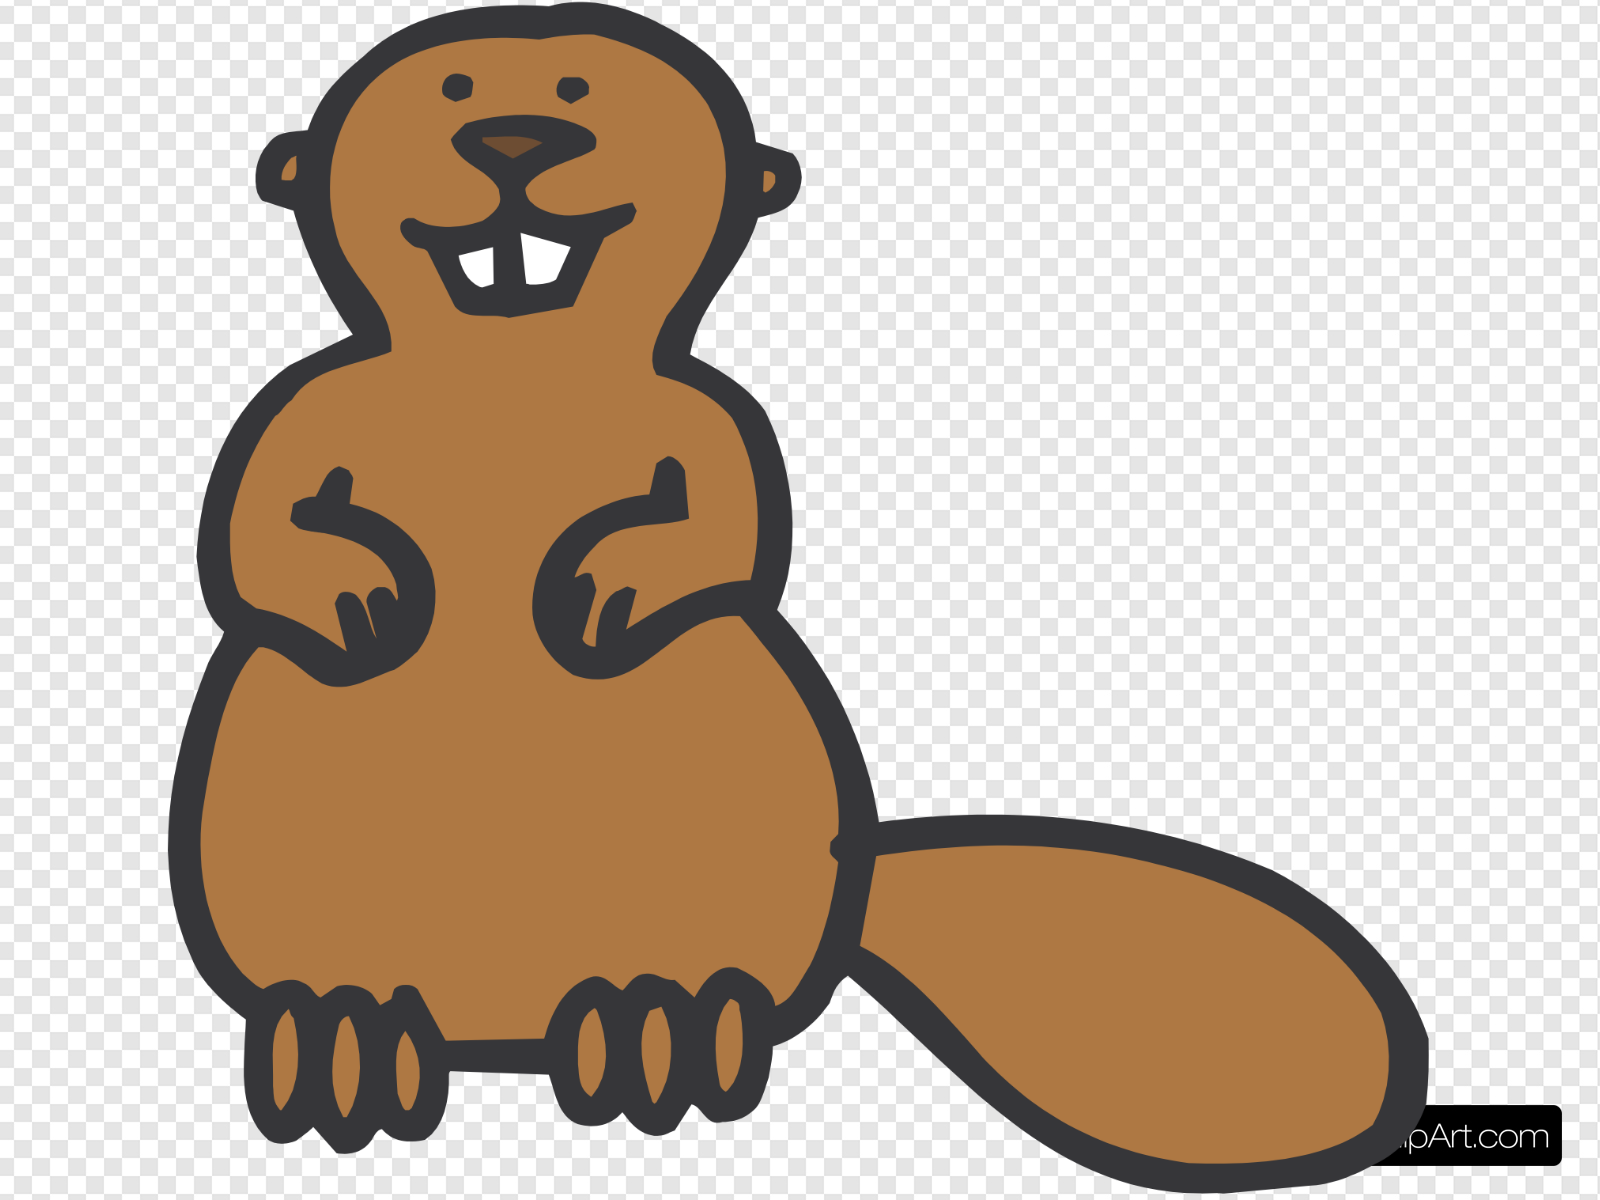 Simple Beaver Cartoon Clip art, Icon and SVG.